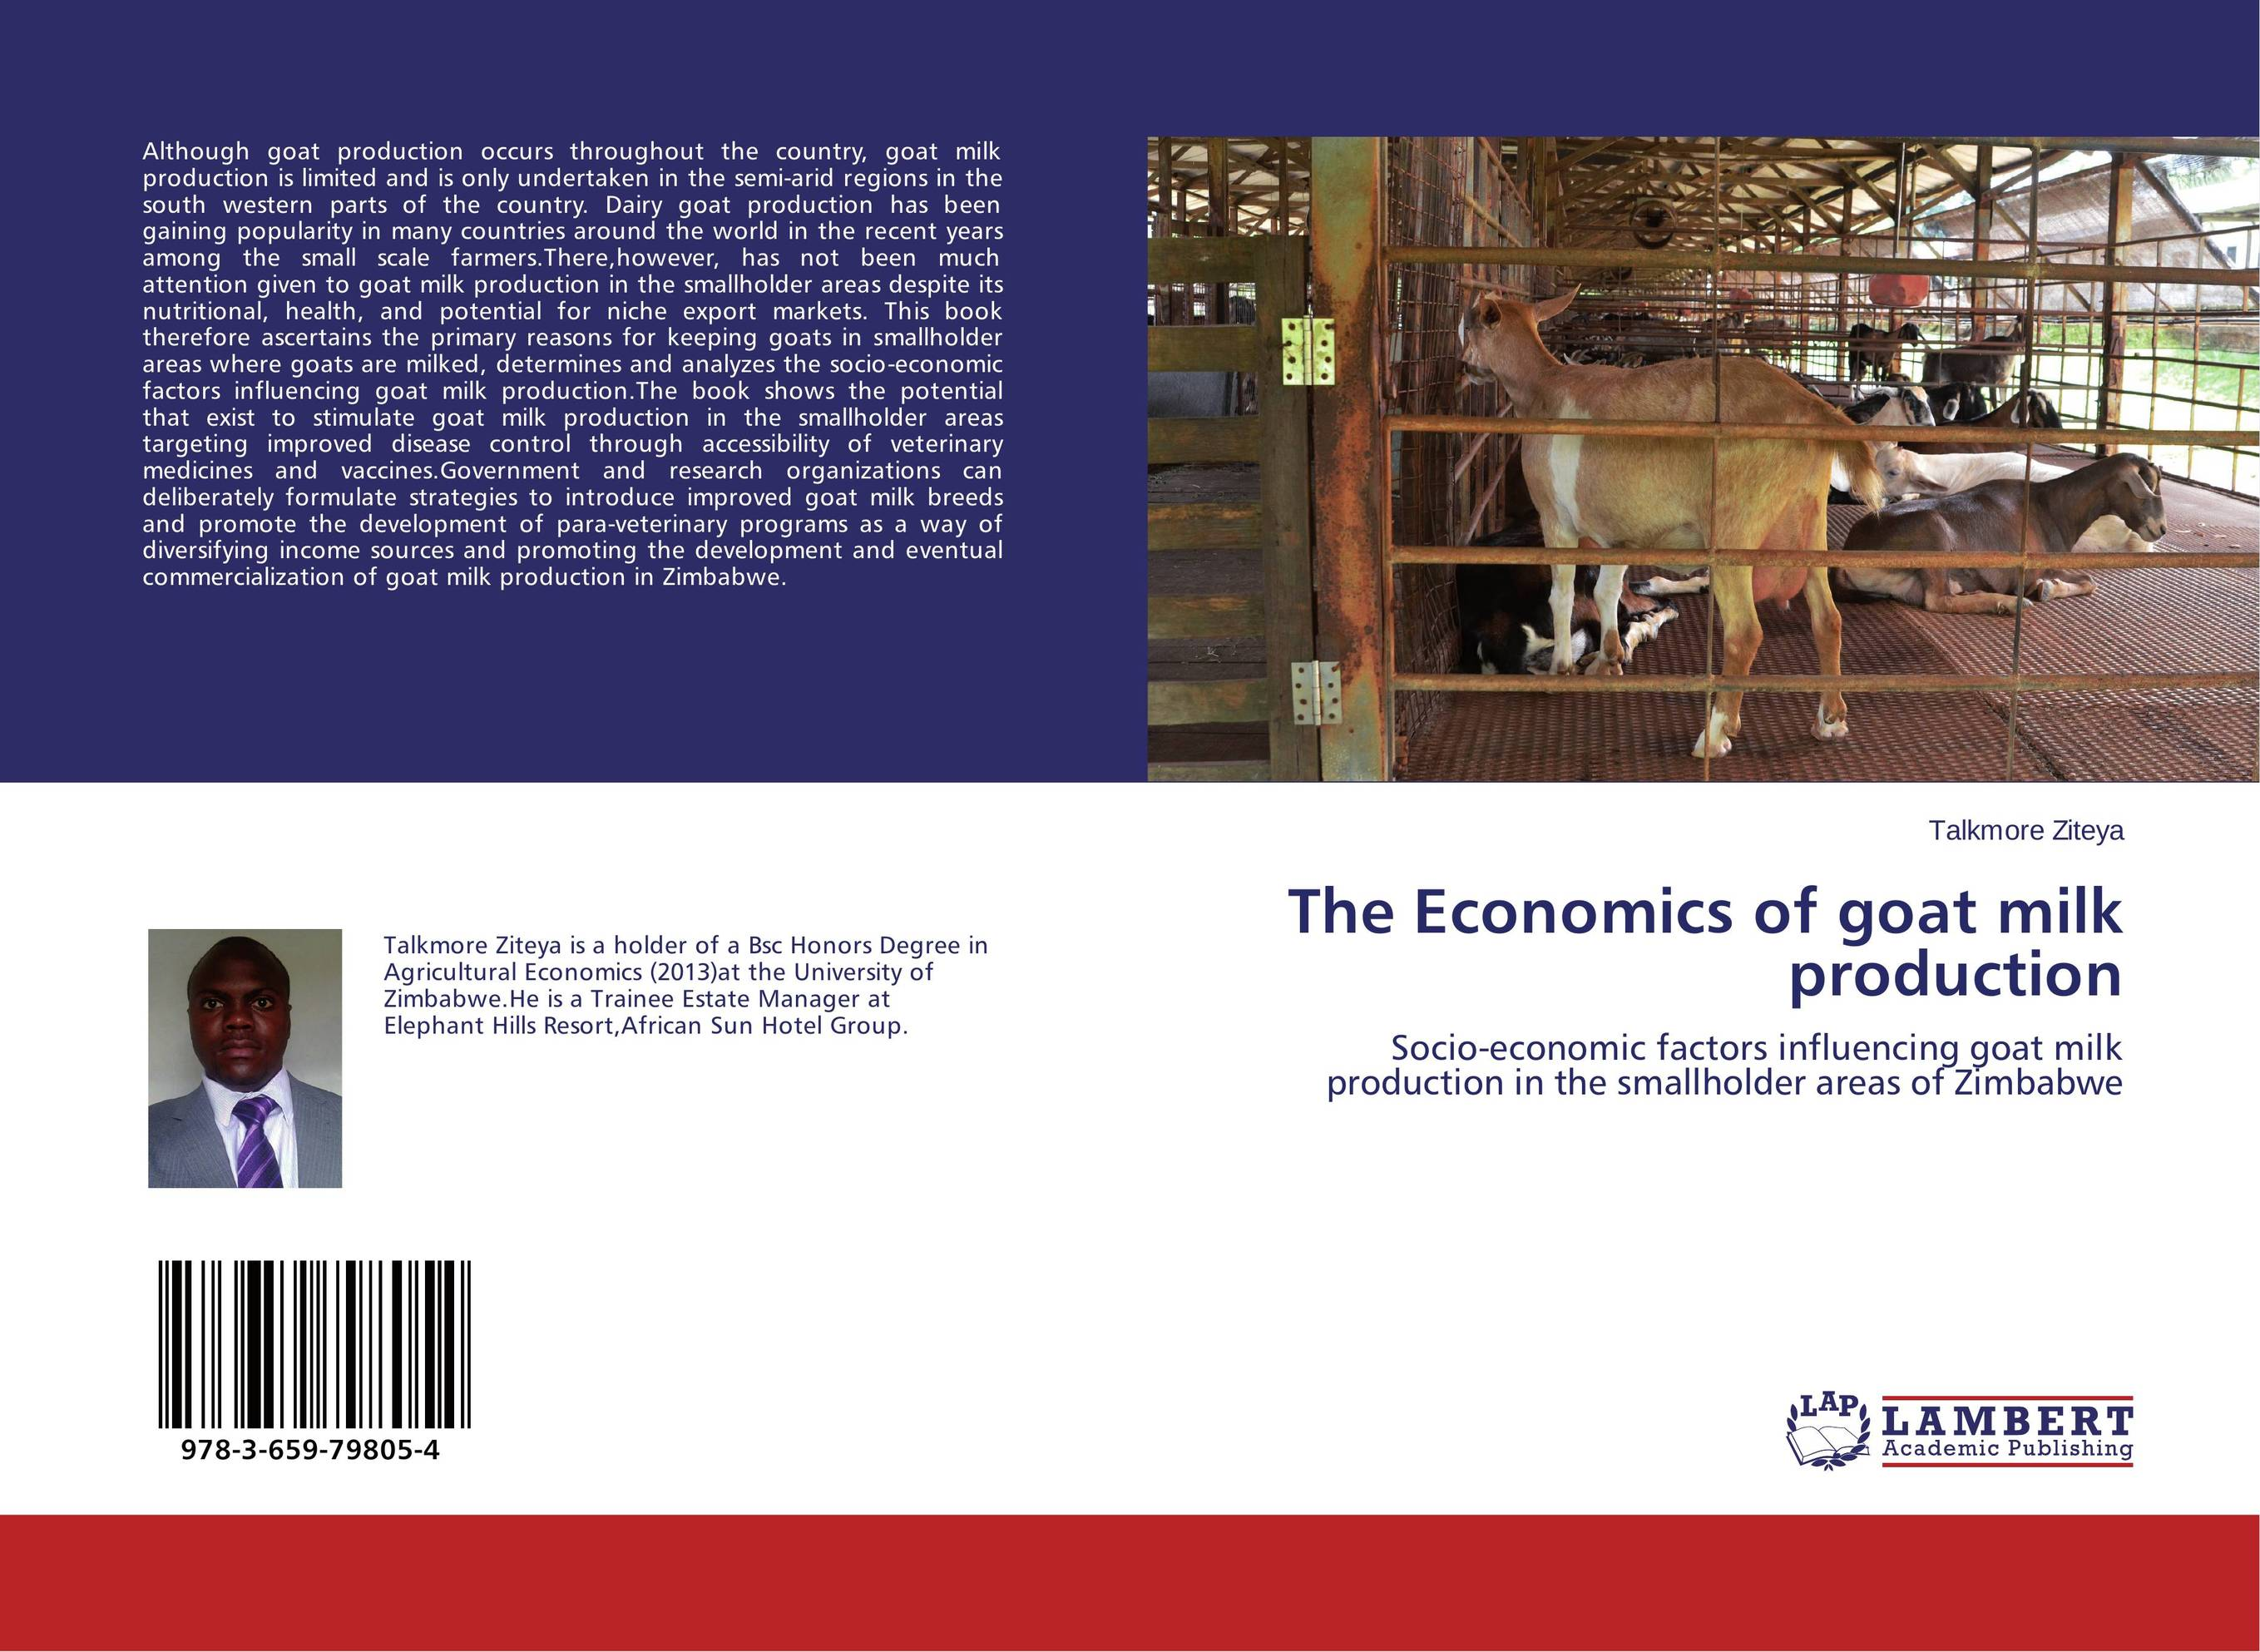 The Economics of goat milk production claw disorders in dairy cows under smallholder zero grazing units